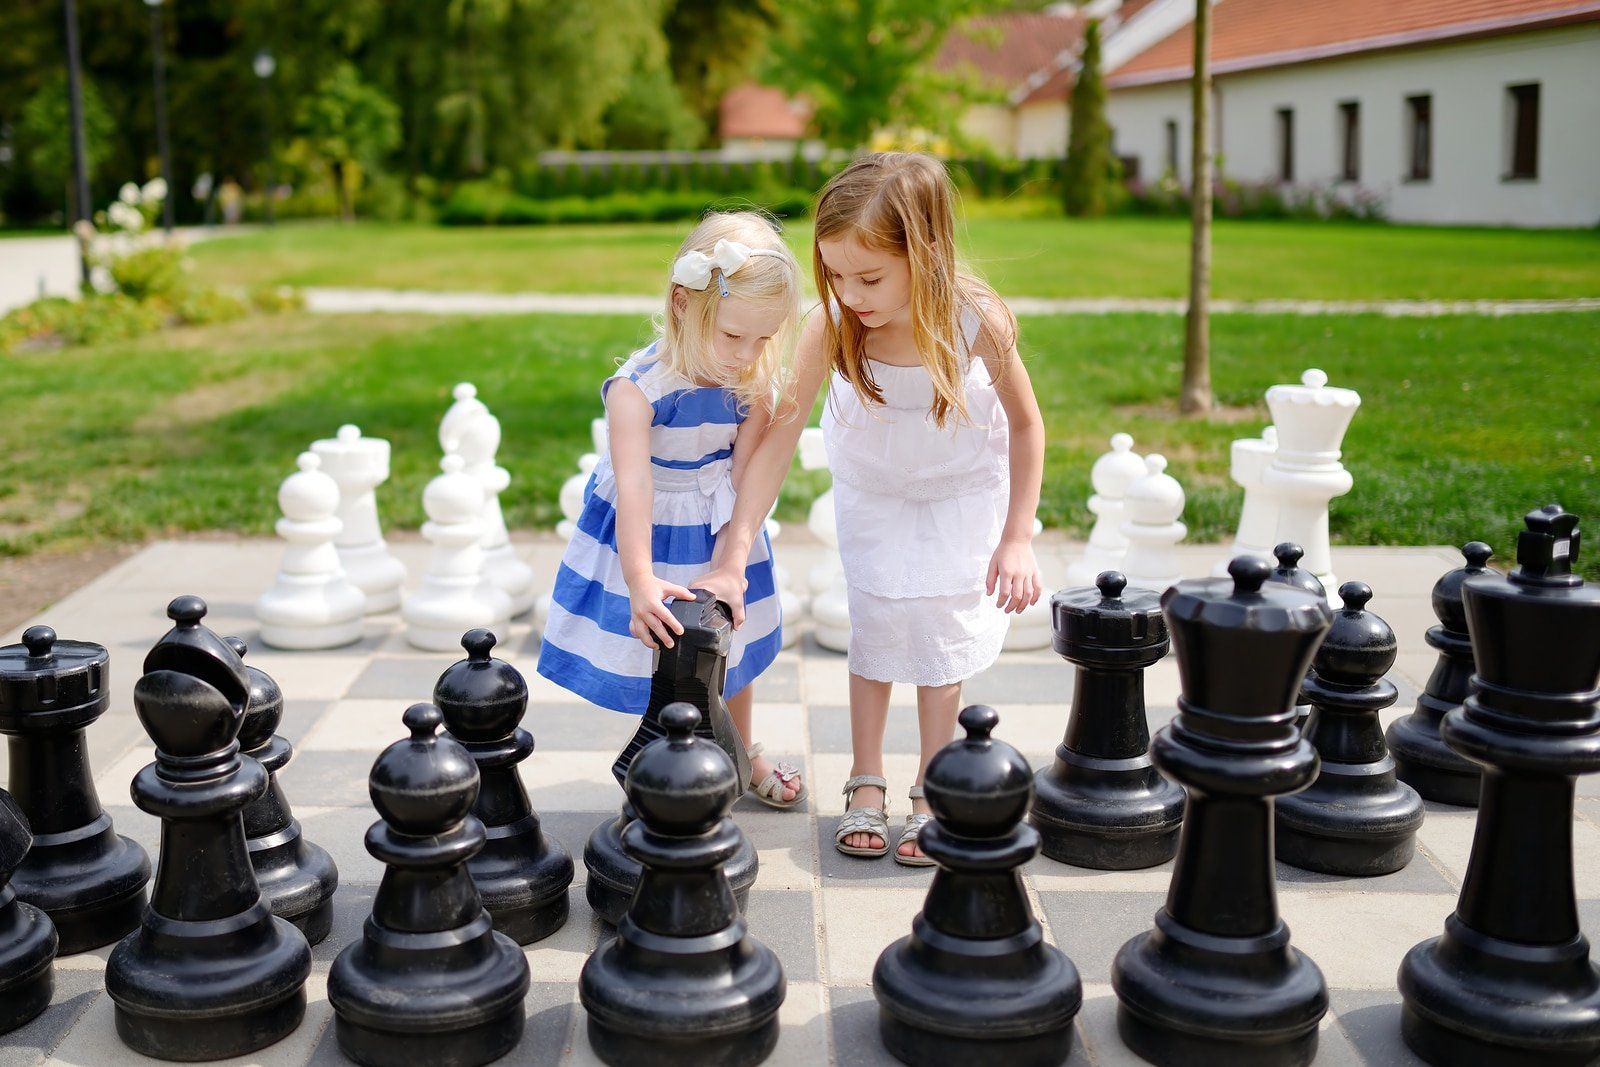 20 Outdoor Lawn Games For The Best Backyard Fun La Jolla Mom